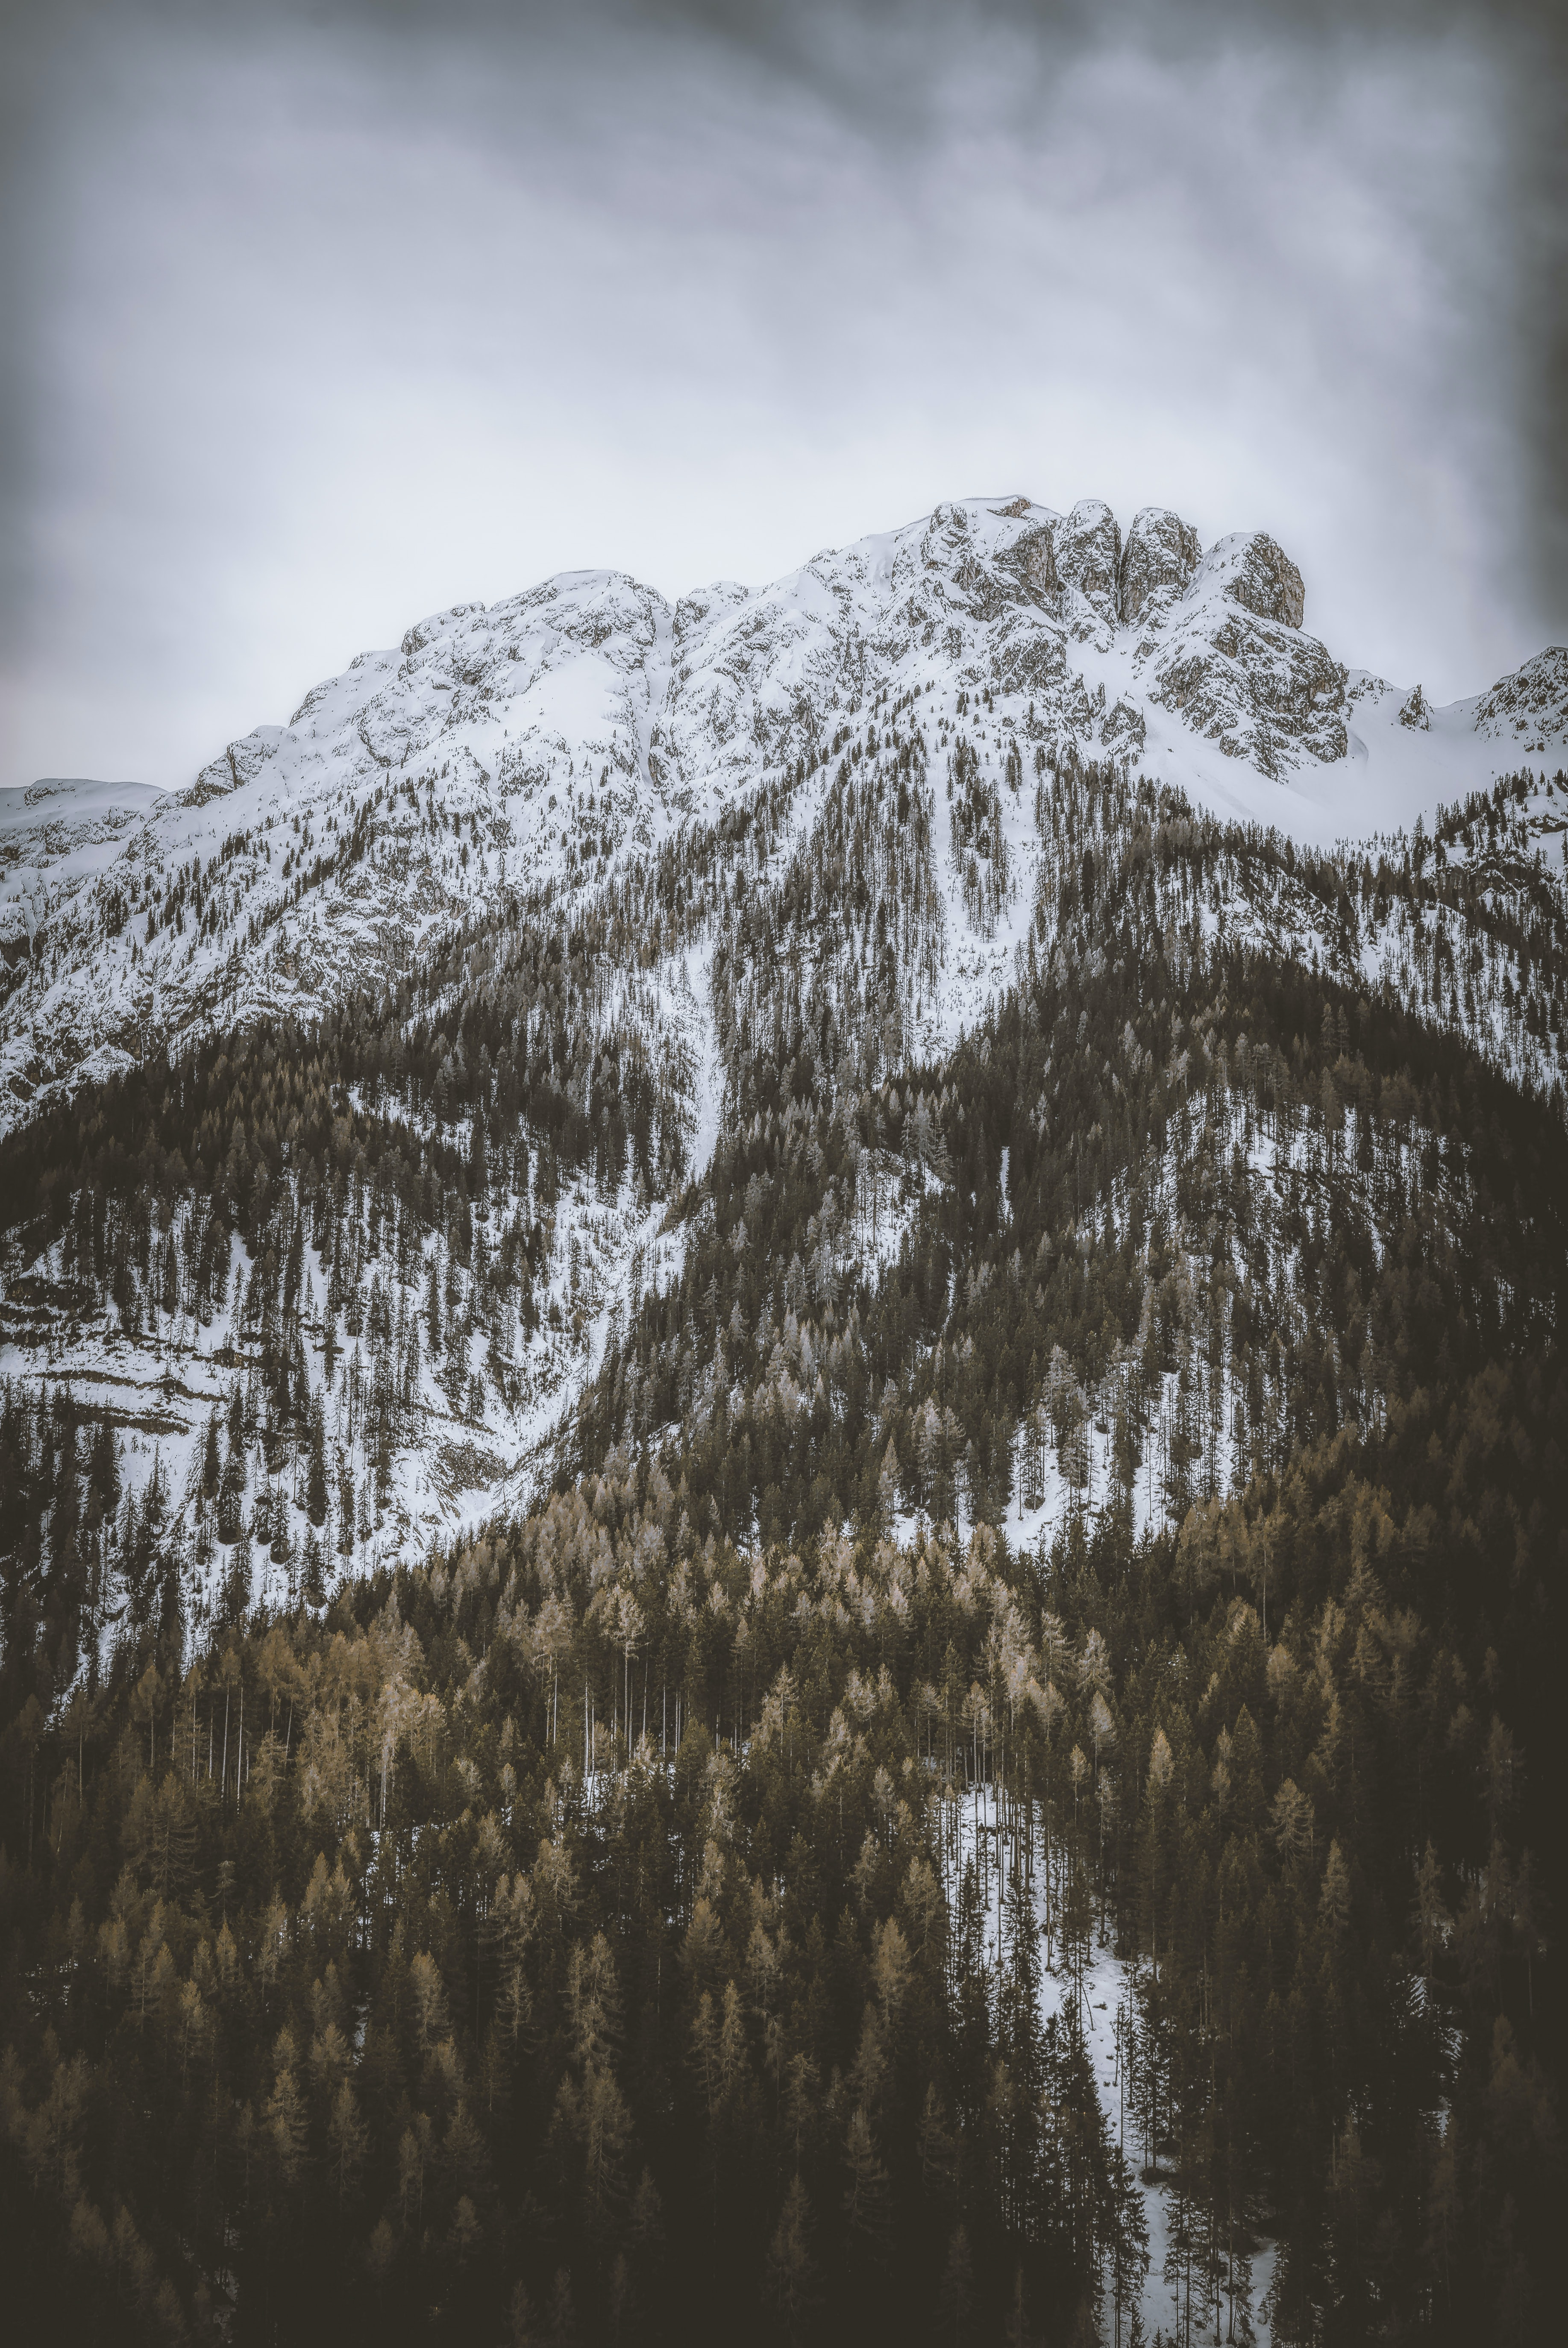 brown forest on snowy mountain